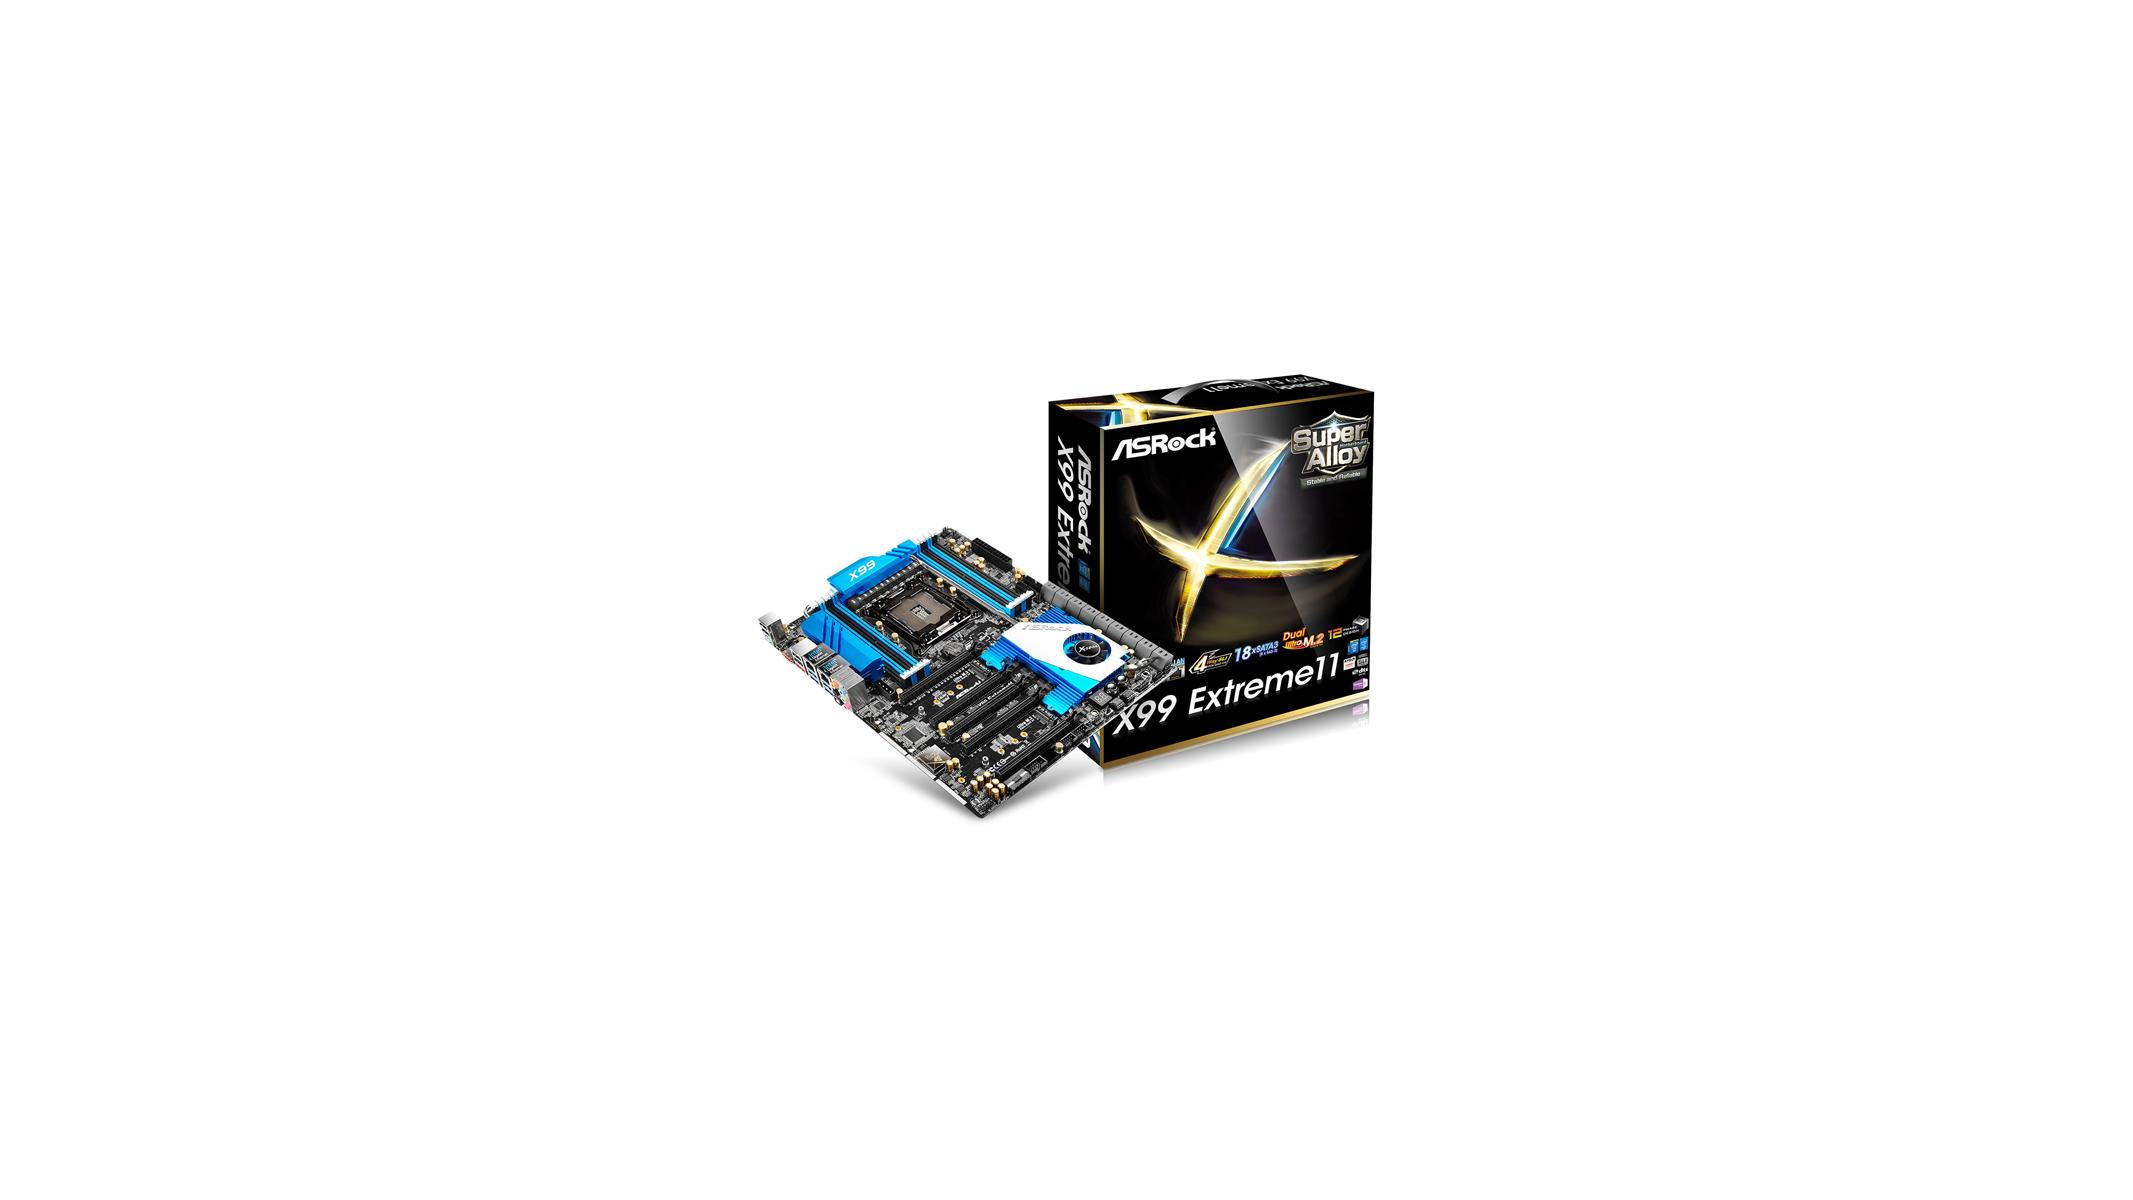 ASROCK X99 EXTREME11 INTEL USB 3.0 DRIVER FOR PC